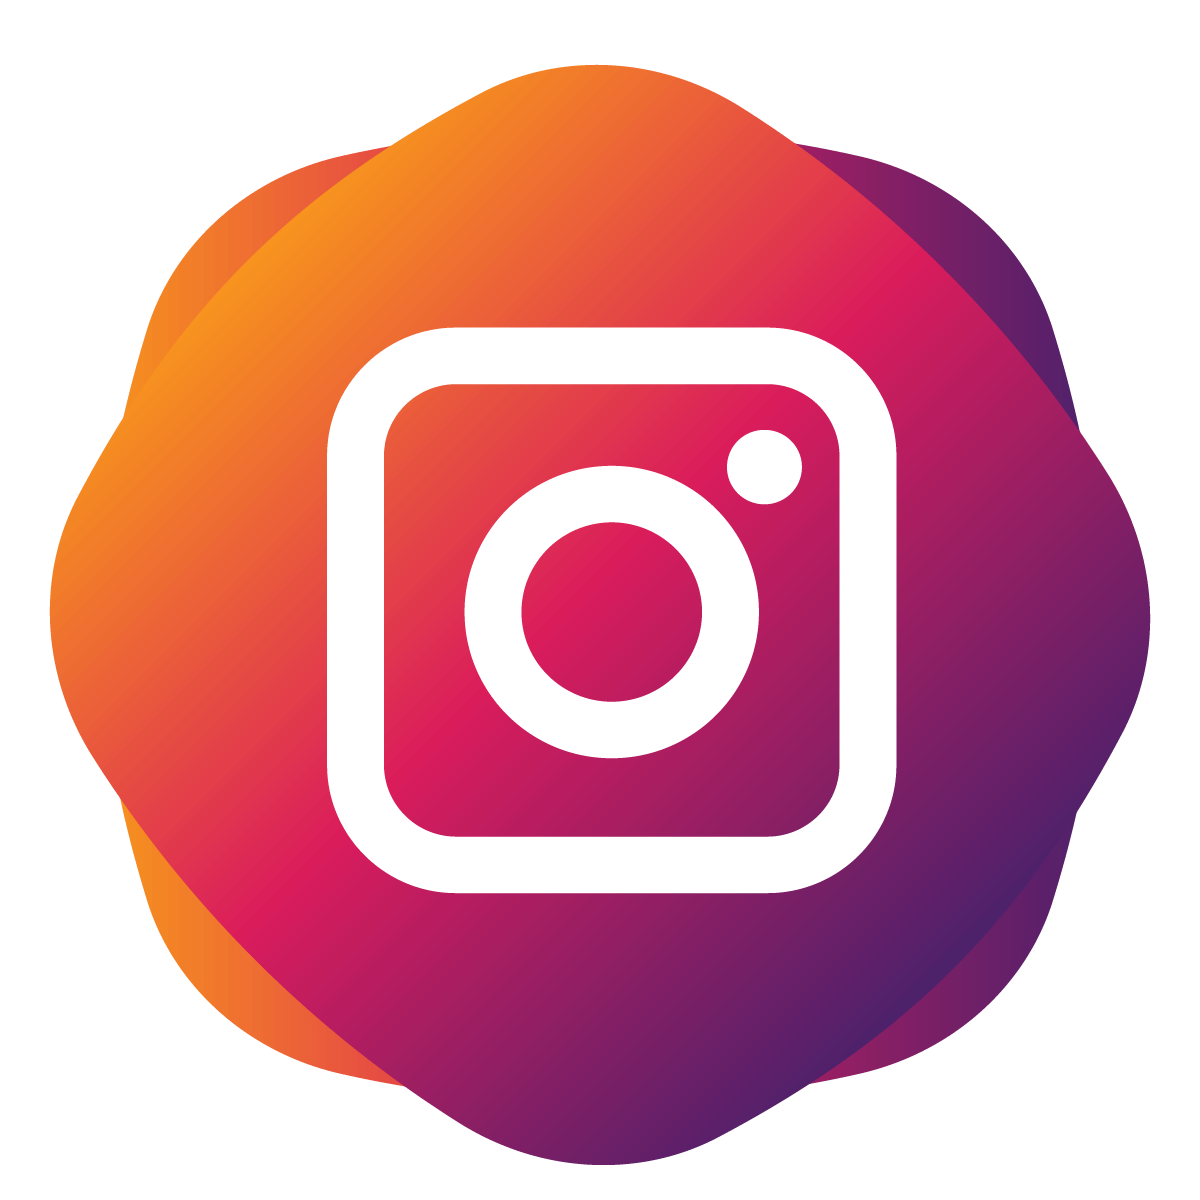 buy Instagram followers PayPal free